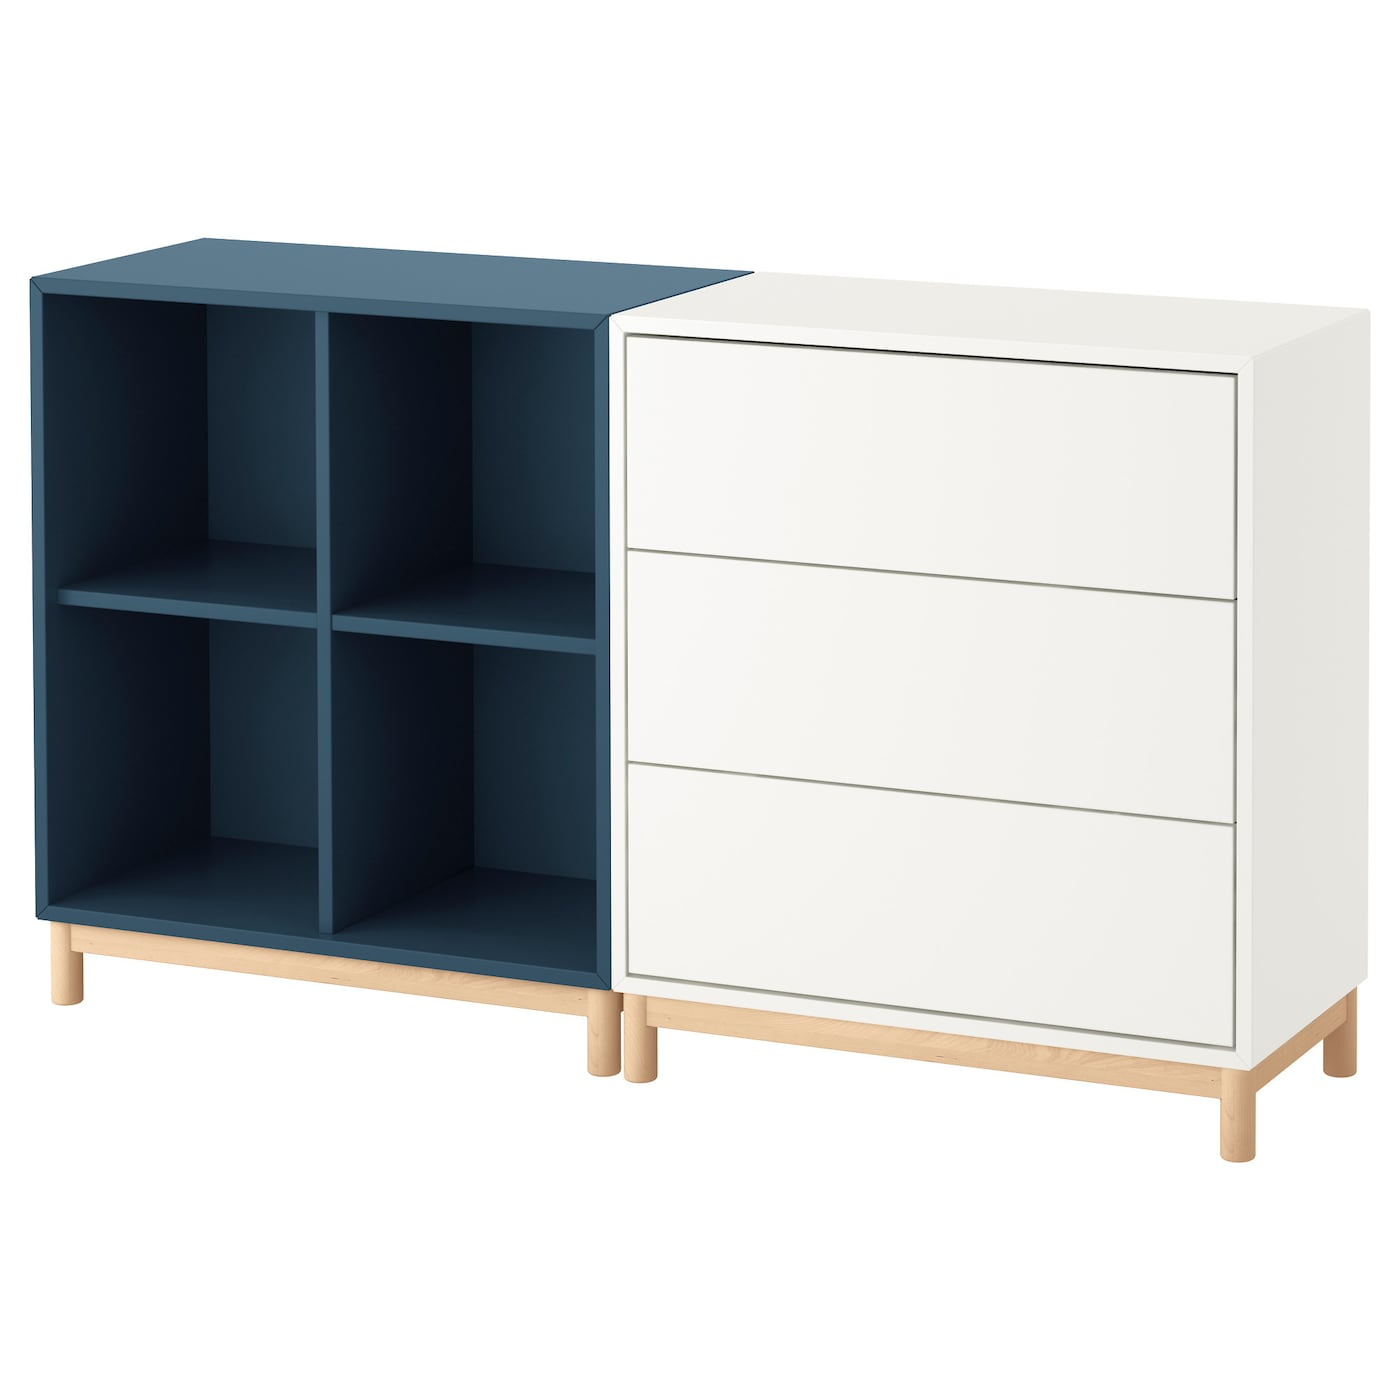 EKET Cabinet combination with legs White/dark blue